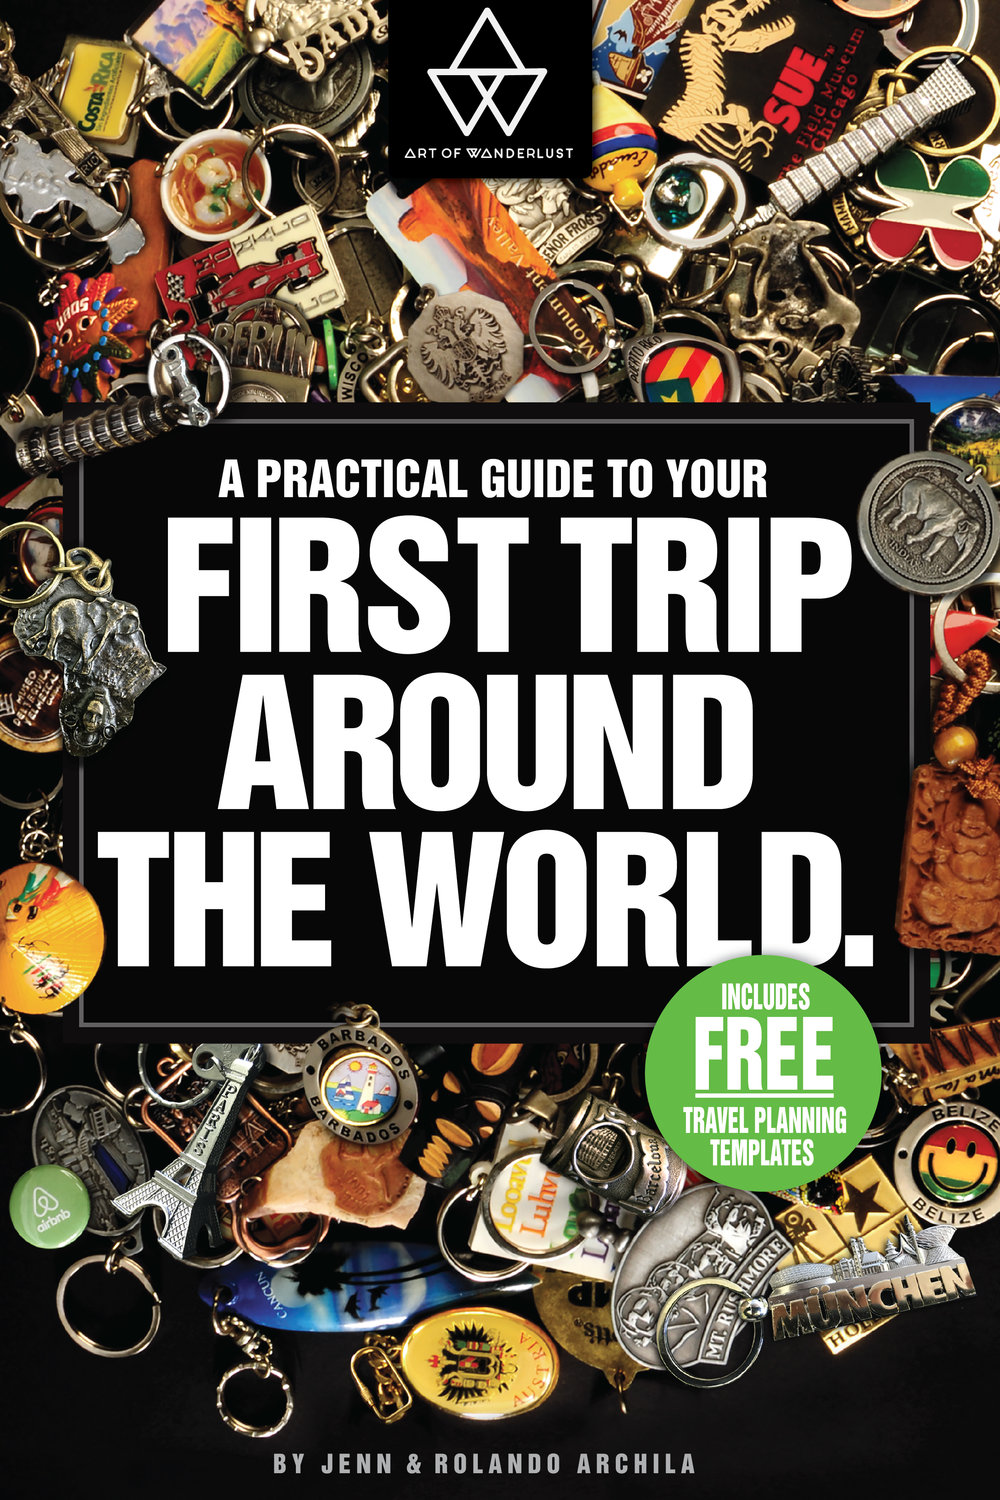 Go From Zero to Nomad in Months - A PRACTICAL GUIDE TO YOUR FIRST TRIP AROUND THE WORLDThis eBook is for anyone who's stared at a cubicle wall and daydreamed about simply taking off and traveling the world. Contrary to popular belief, long term travel is within reach, it can be affordable, and it won't ruin your life!Turn your travel dreams into your mind-altering reality by following this step-by-step blueprint, which breaks travel planning into bite-sized, actionable chunks. Before you know it, you'll be sipping caipirinhas in Rio de Janeiro, getting lost in the streets of Venice or exploring the ancient ruins of Machu Picchu.This engaging guide to your first trip around the world will teach you: How to use the step-by-step plan to take you from zero to nomad in months • How to budget and save for the trip of your dreams without going broke • How to take advantage of travel hacks to get the most bang for your buck • How to manage the unsexy details of travel planning without ruining your life •The digital download also includes access to a number of online resources, including reservation tracking spreadsheets and expense estimation tools to keep you organized and on track with your travel goals!